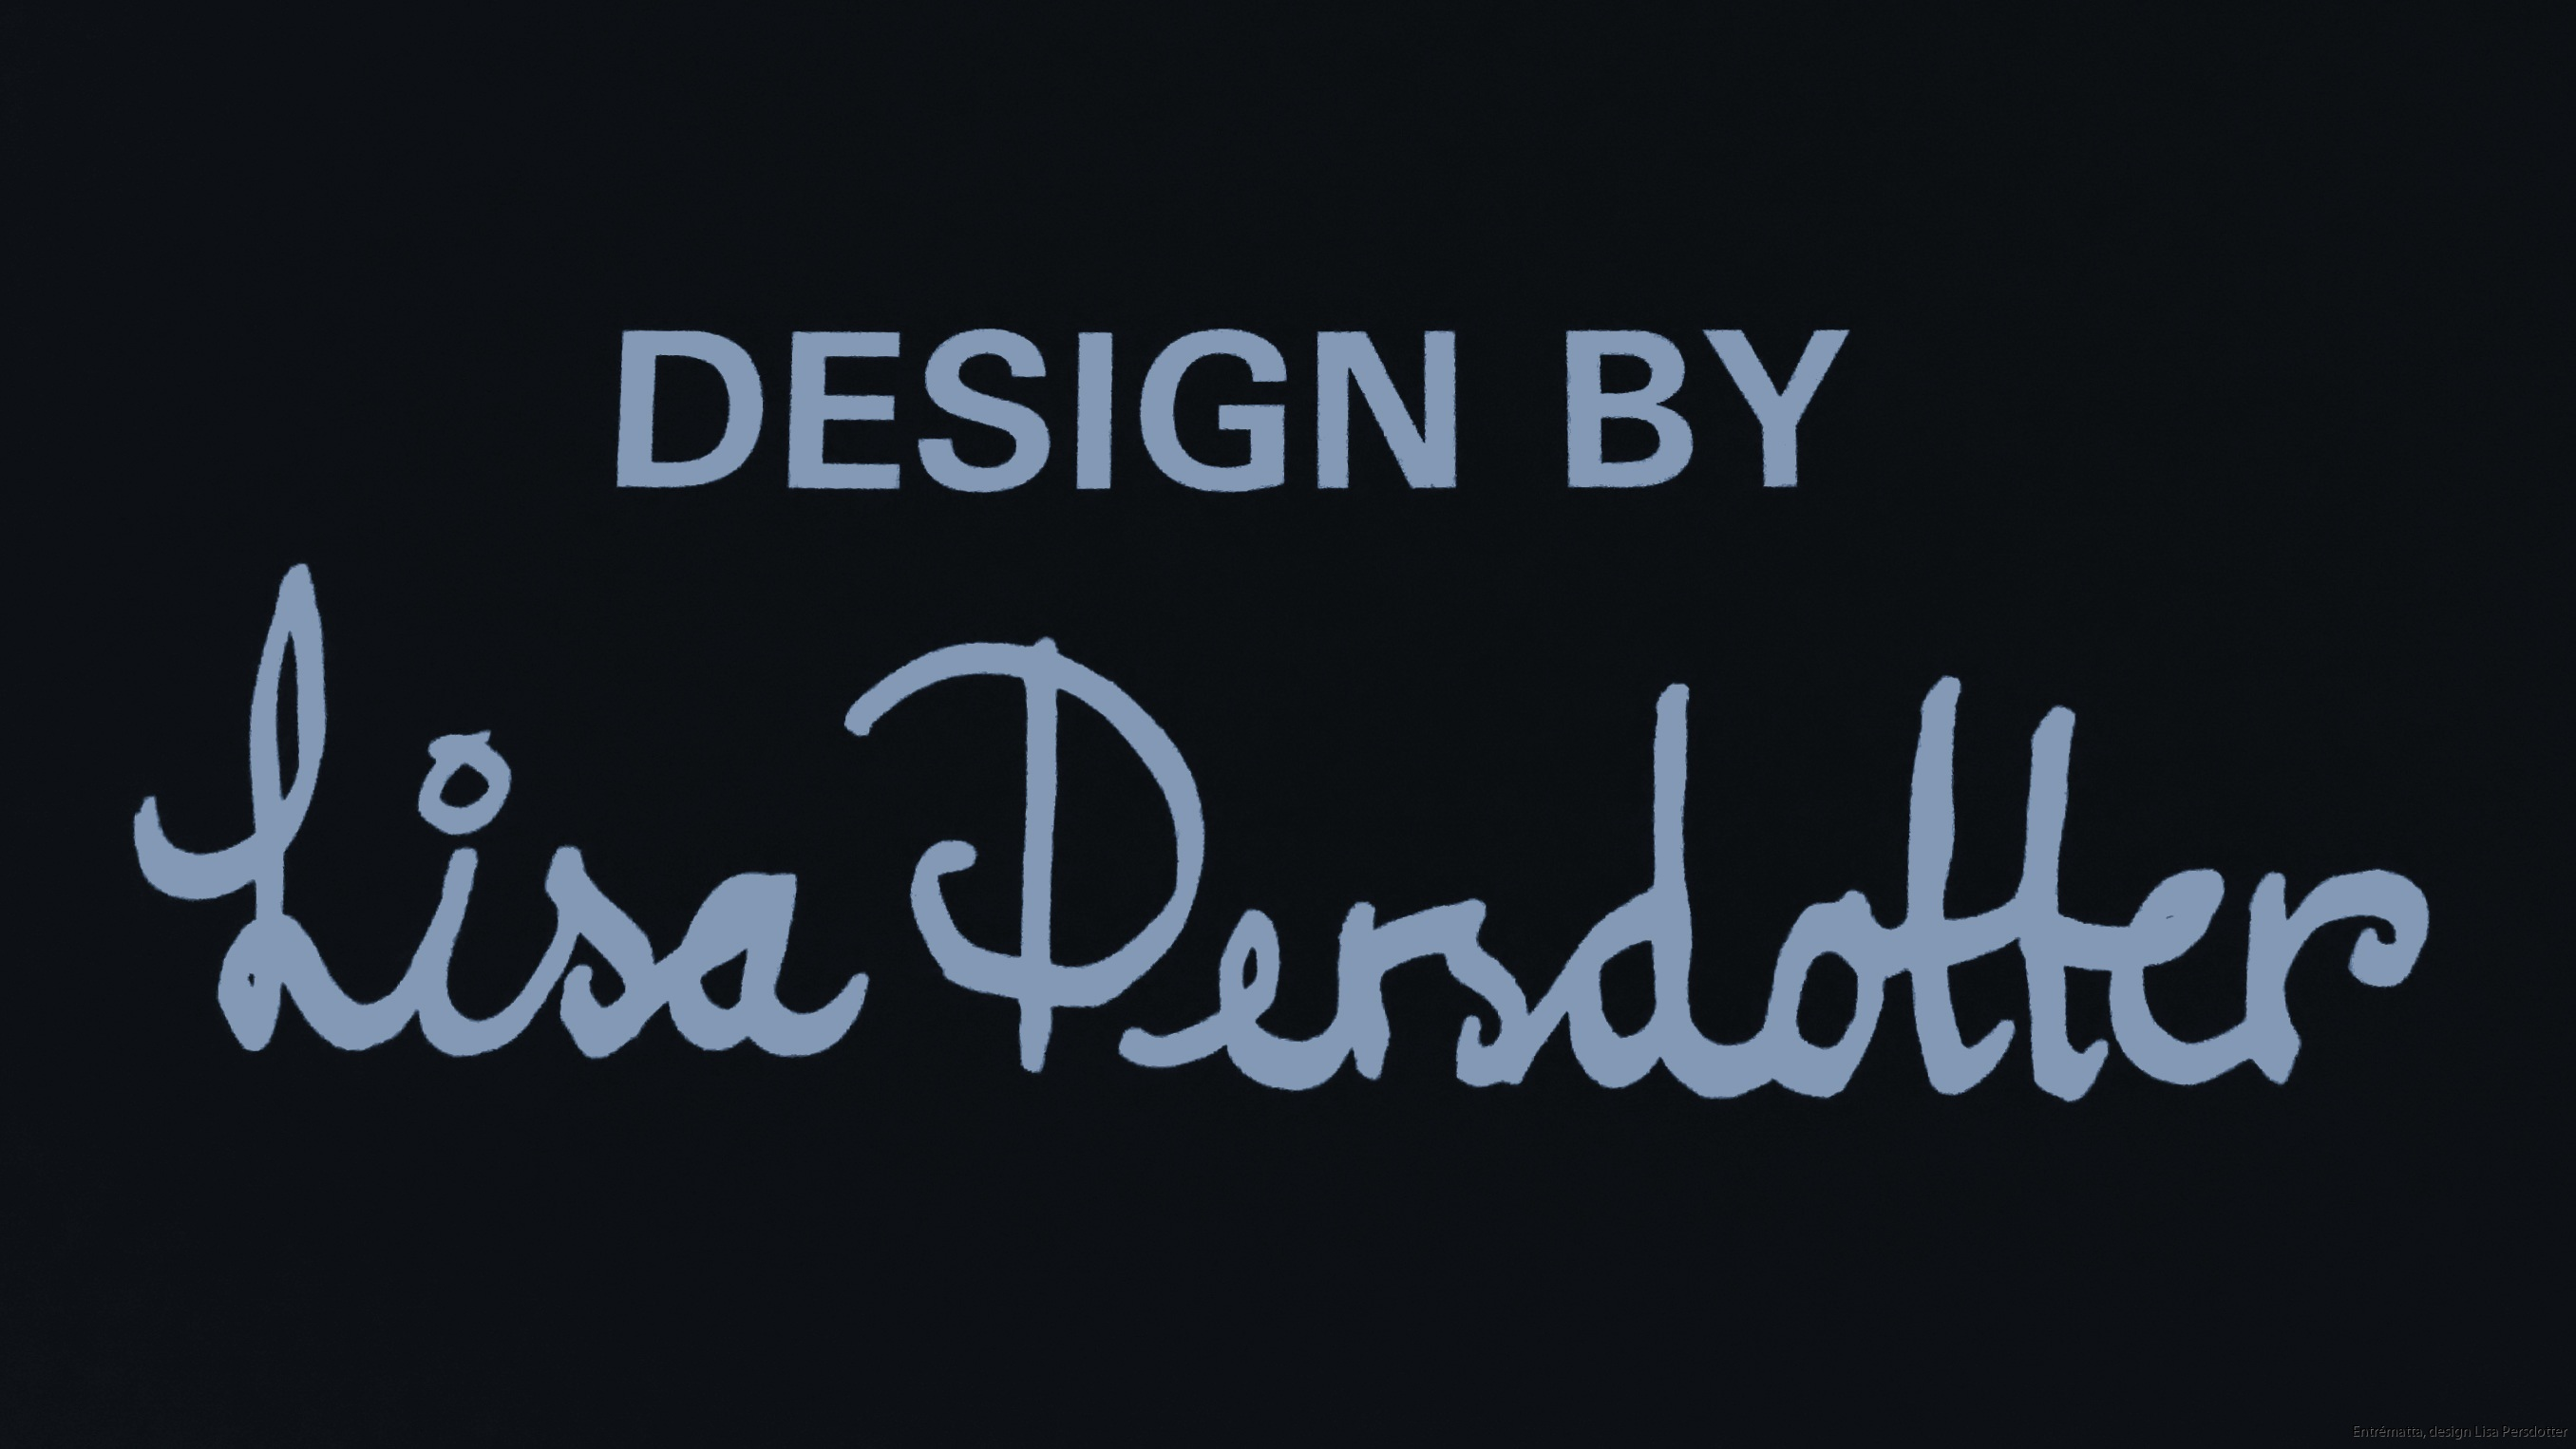 Design Lisa Persdotter